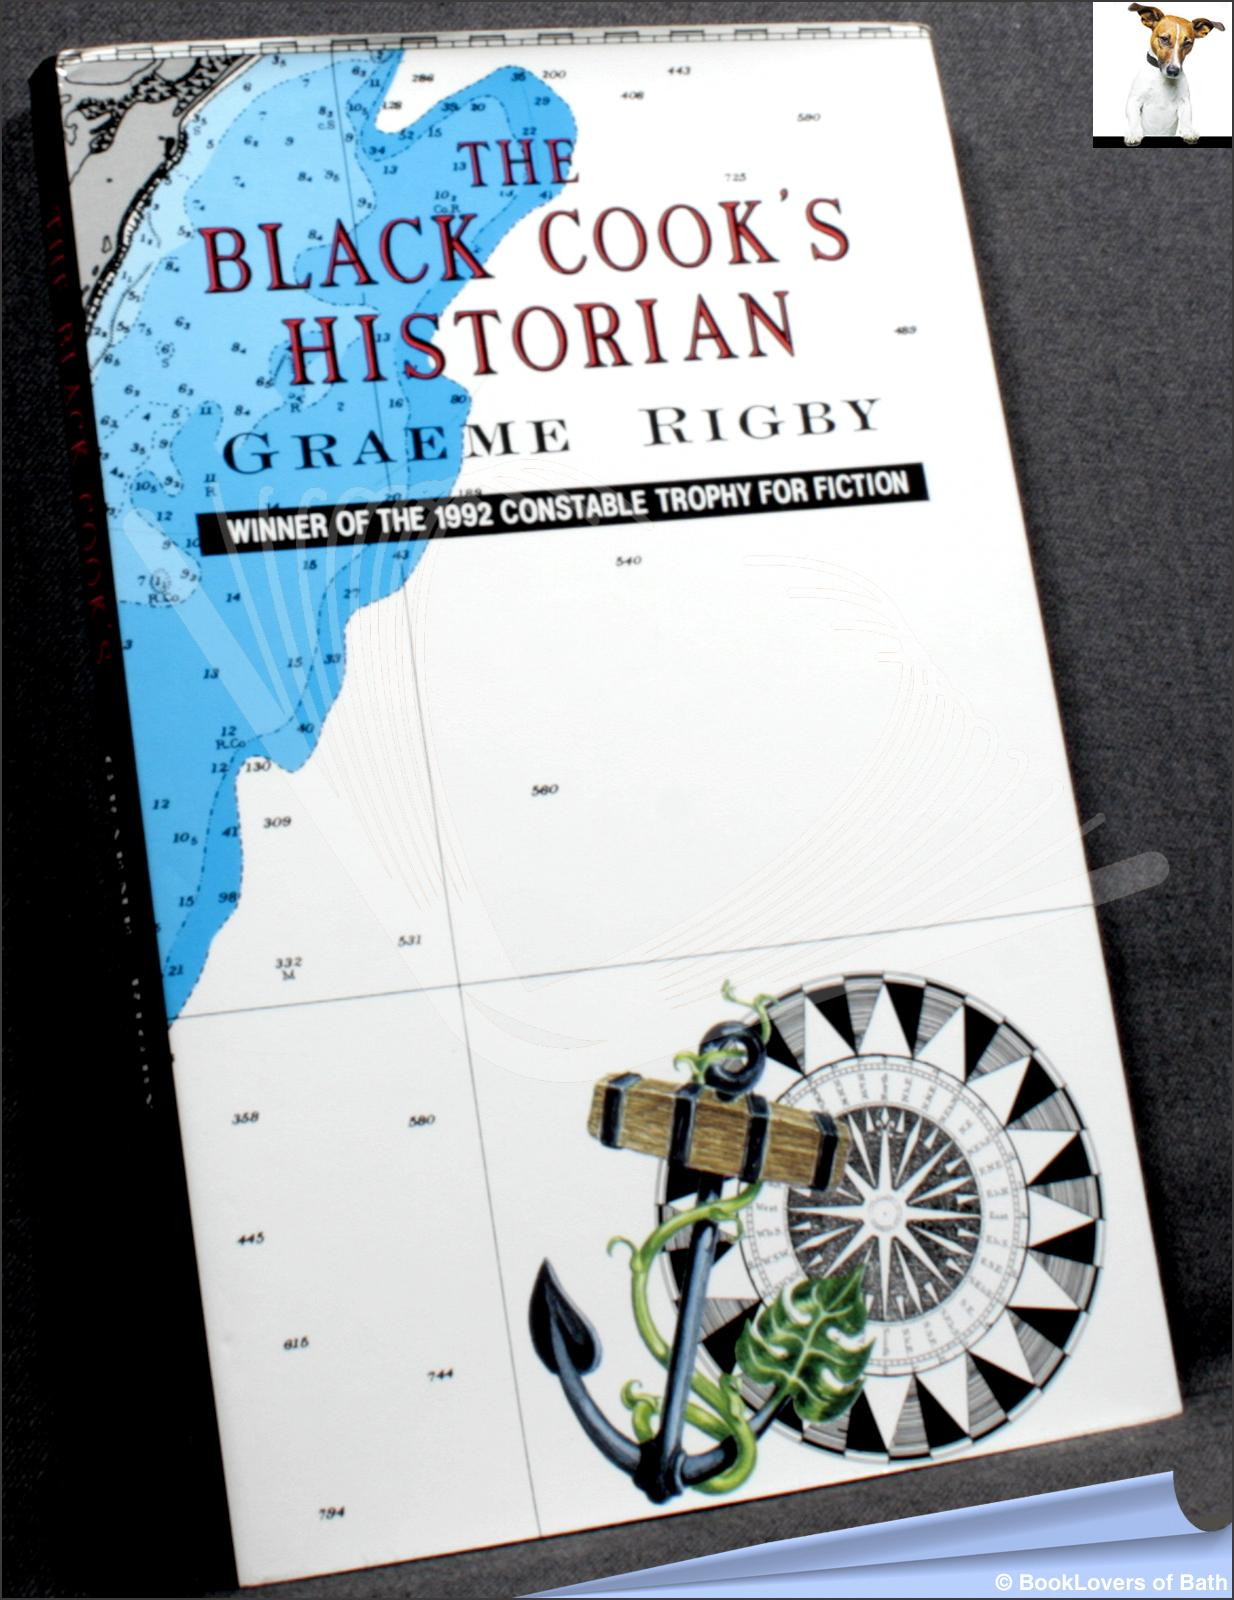 The Black Cook's Historian - Graeme Rigby